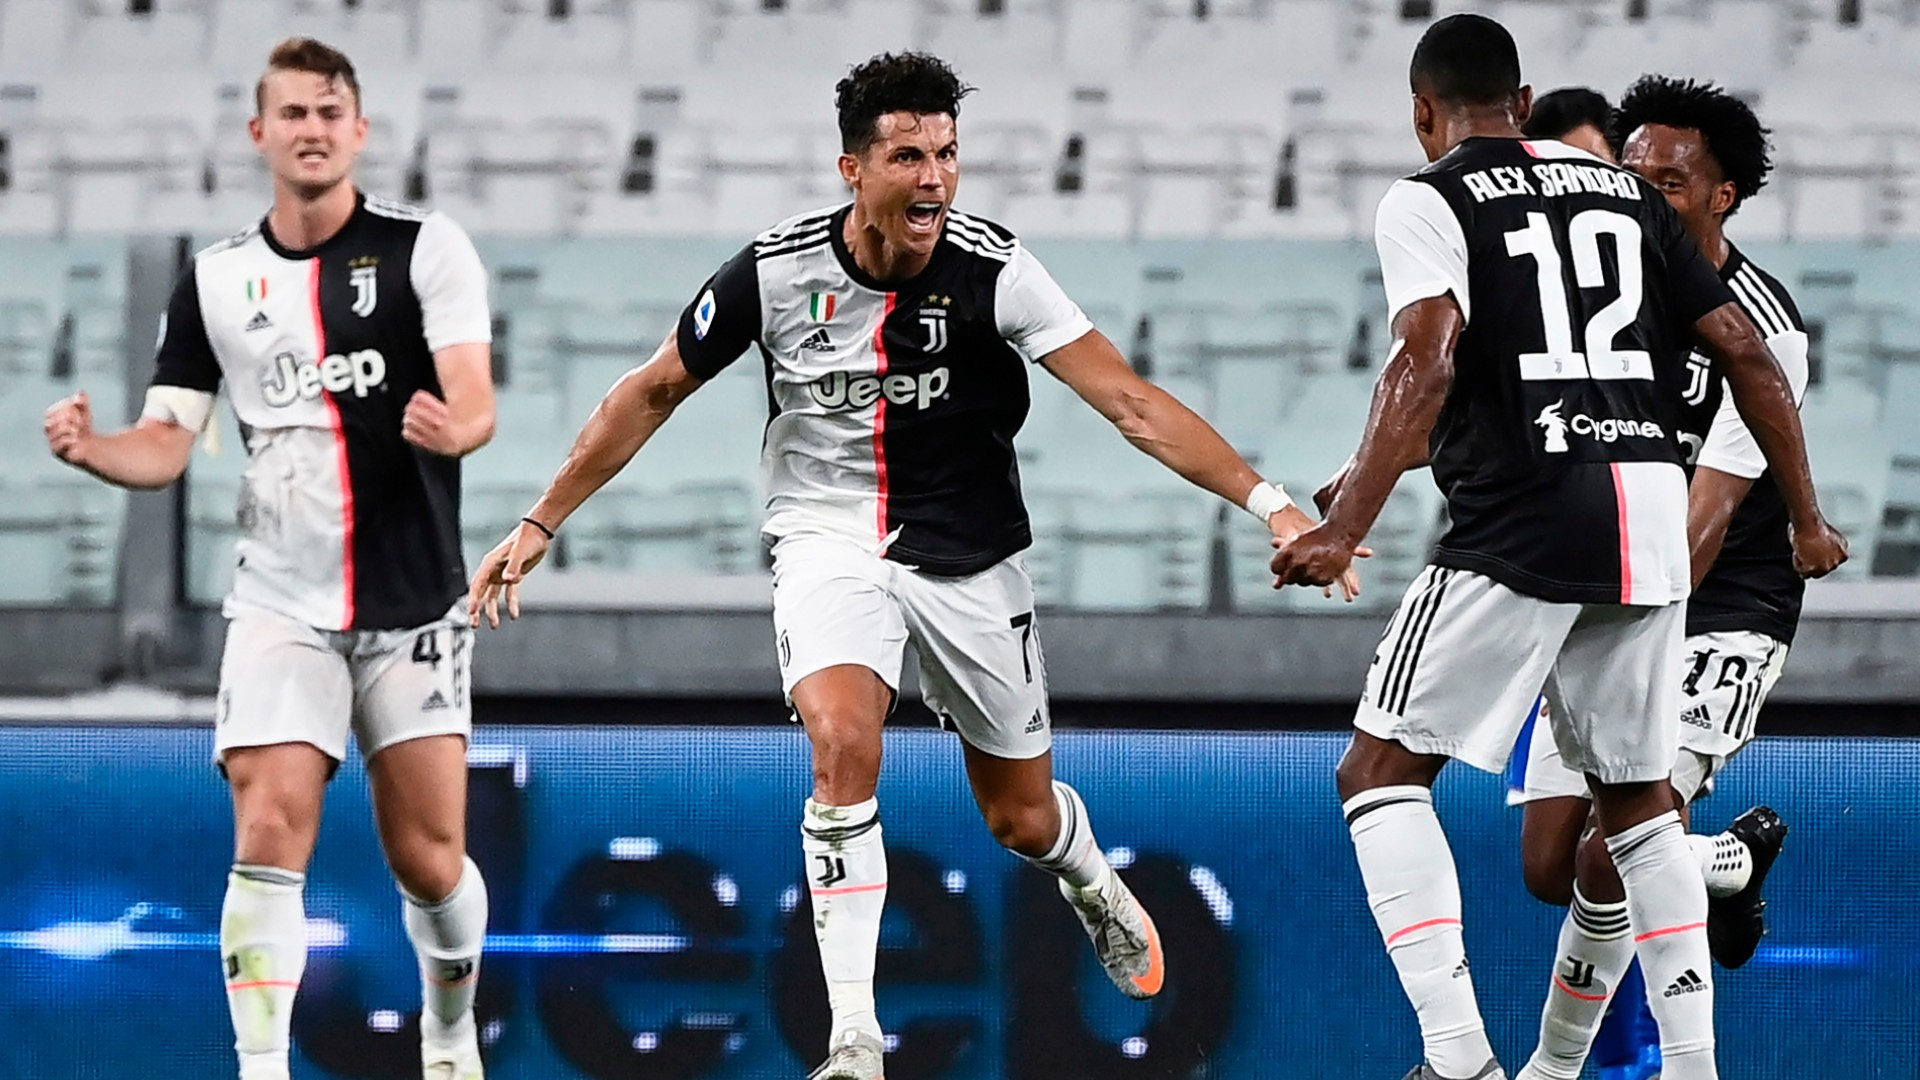 Ronaldo scores to help Juventus clinch ninth consecutive Serie A title